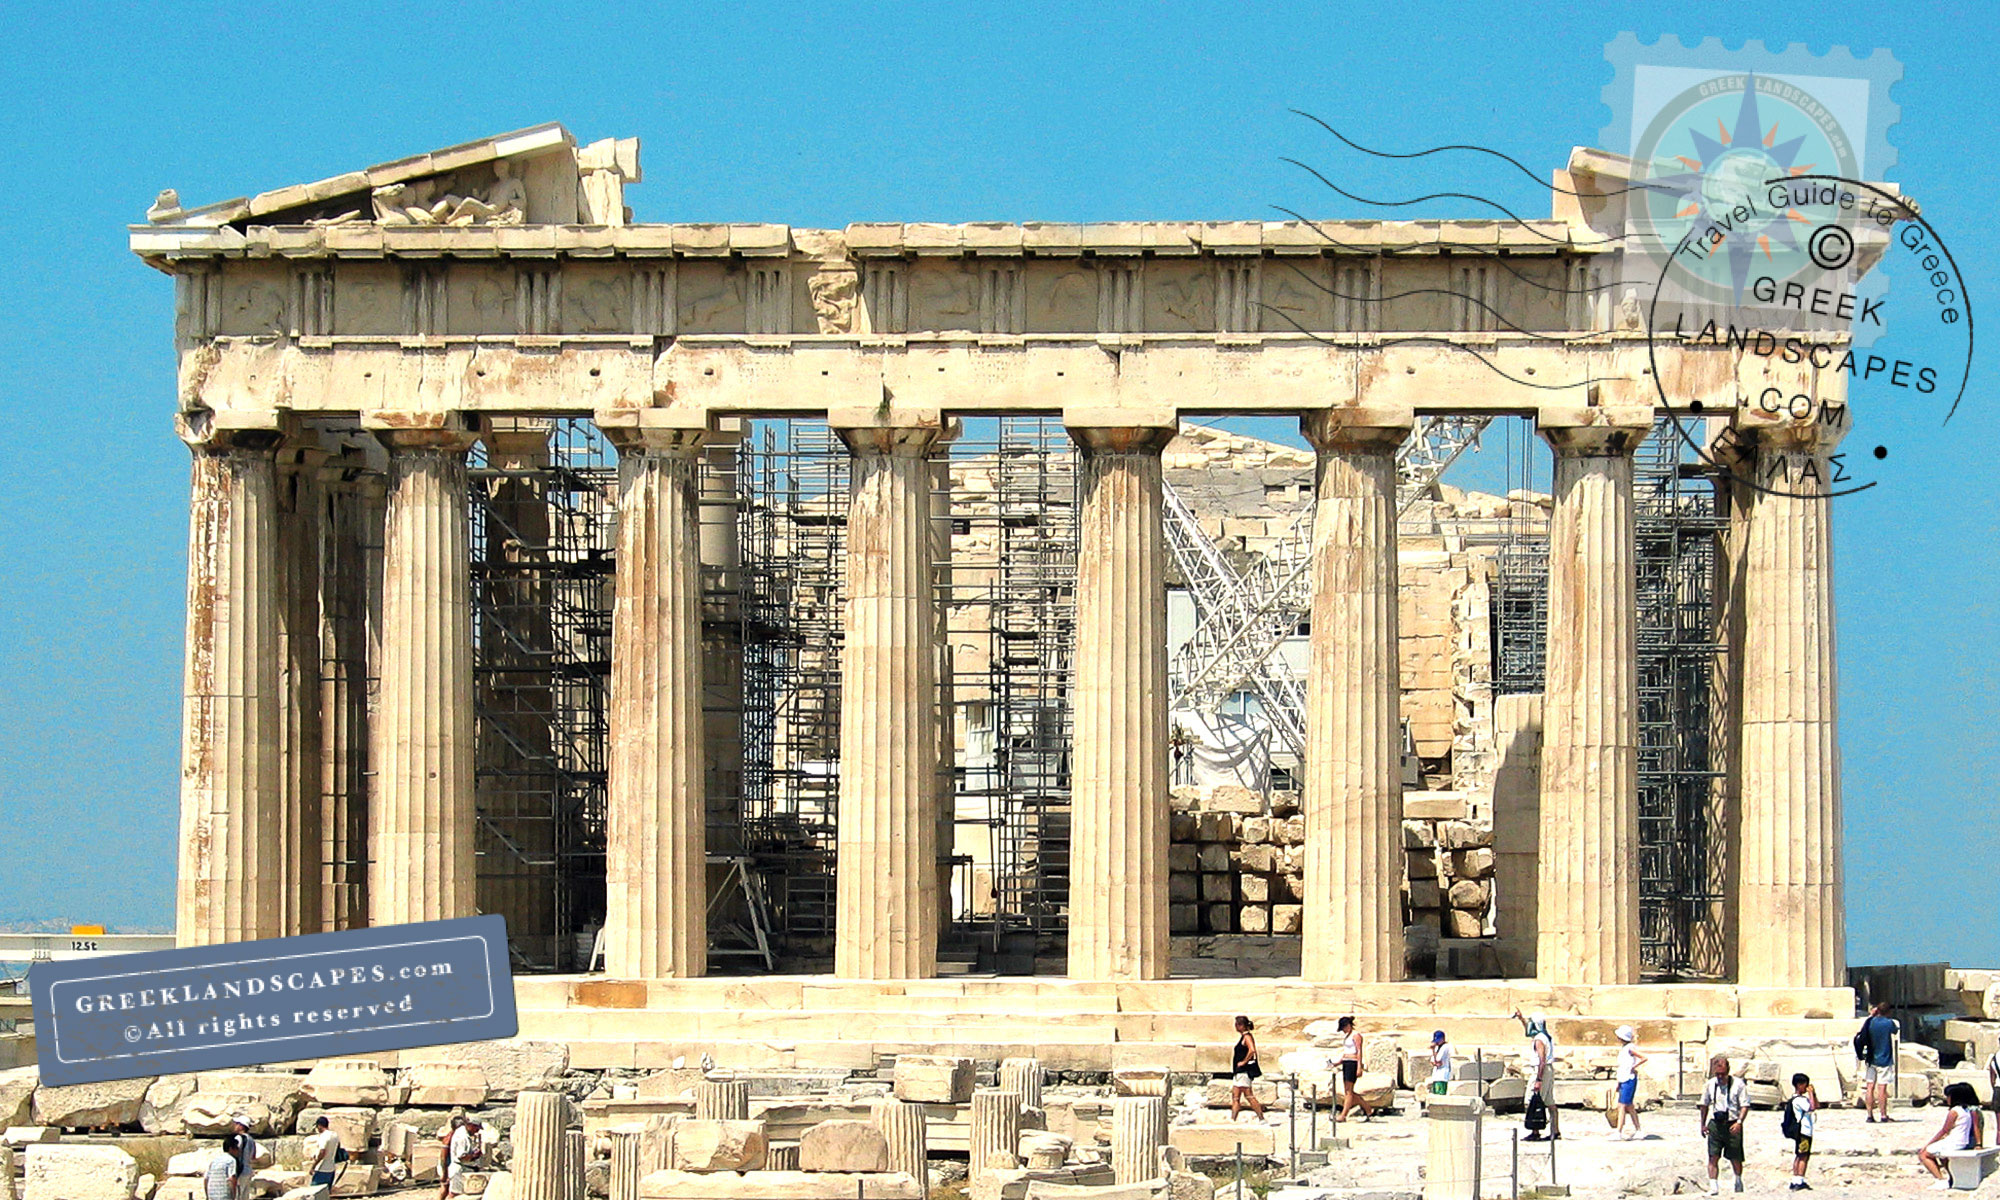 The Parthenon east facade